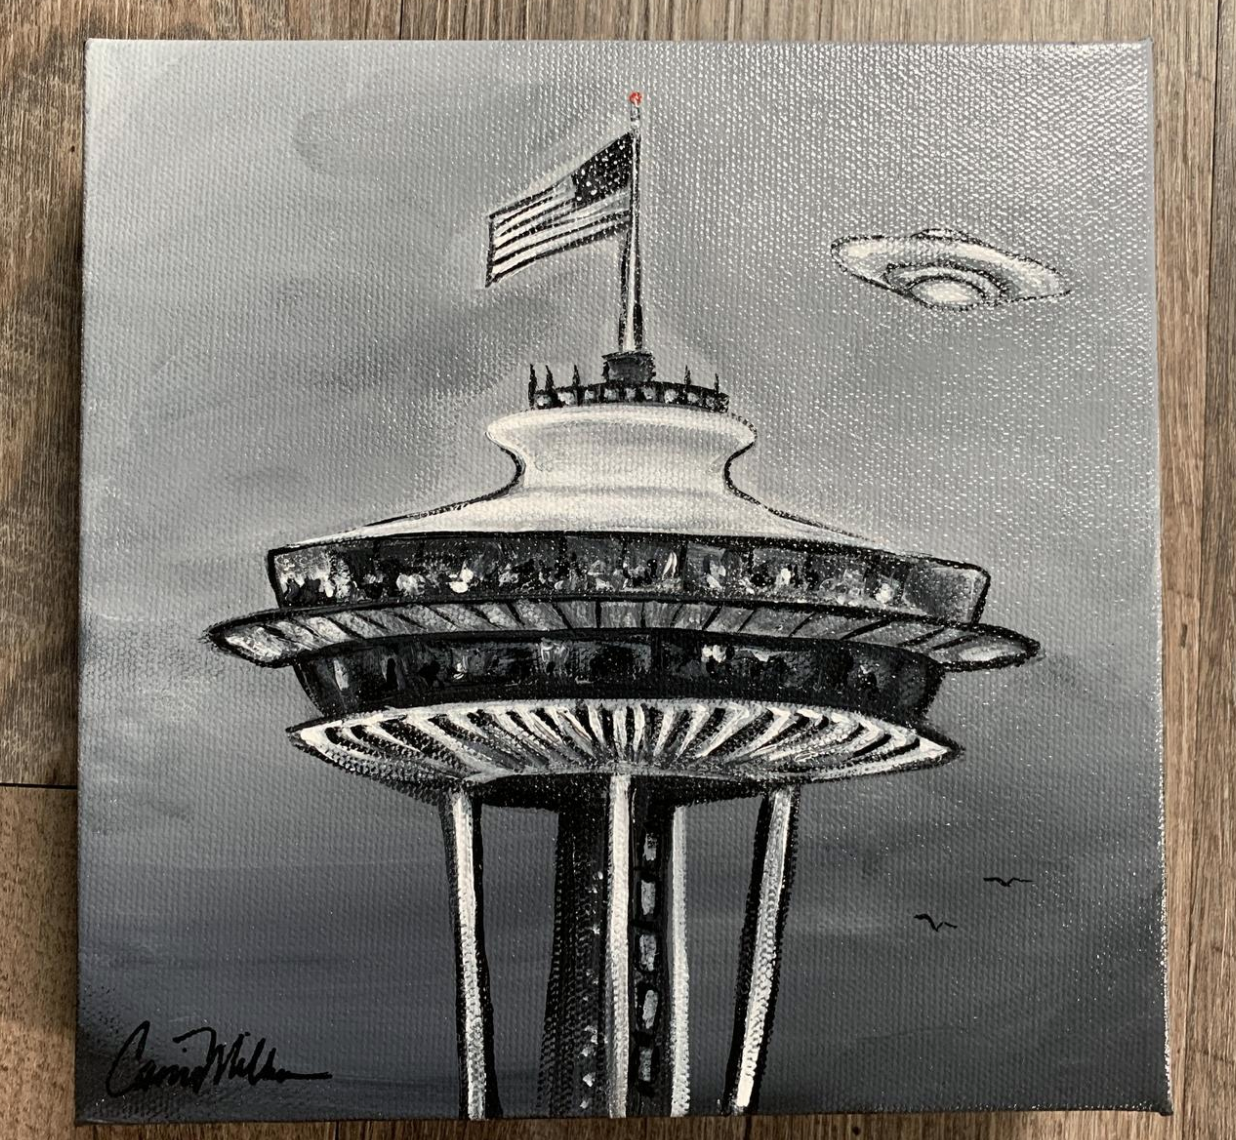 spaceneedle-ufo